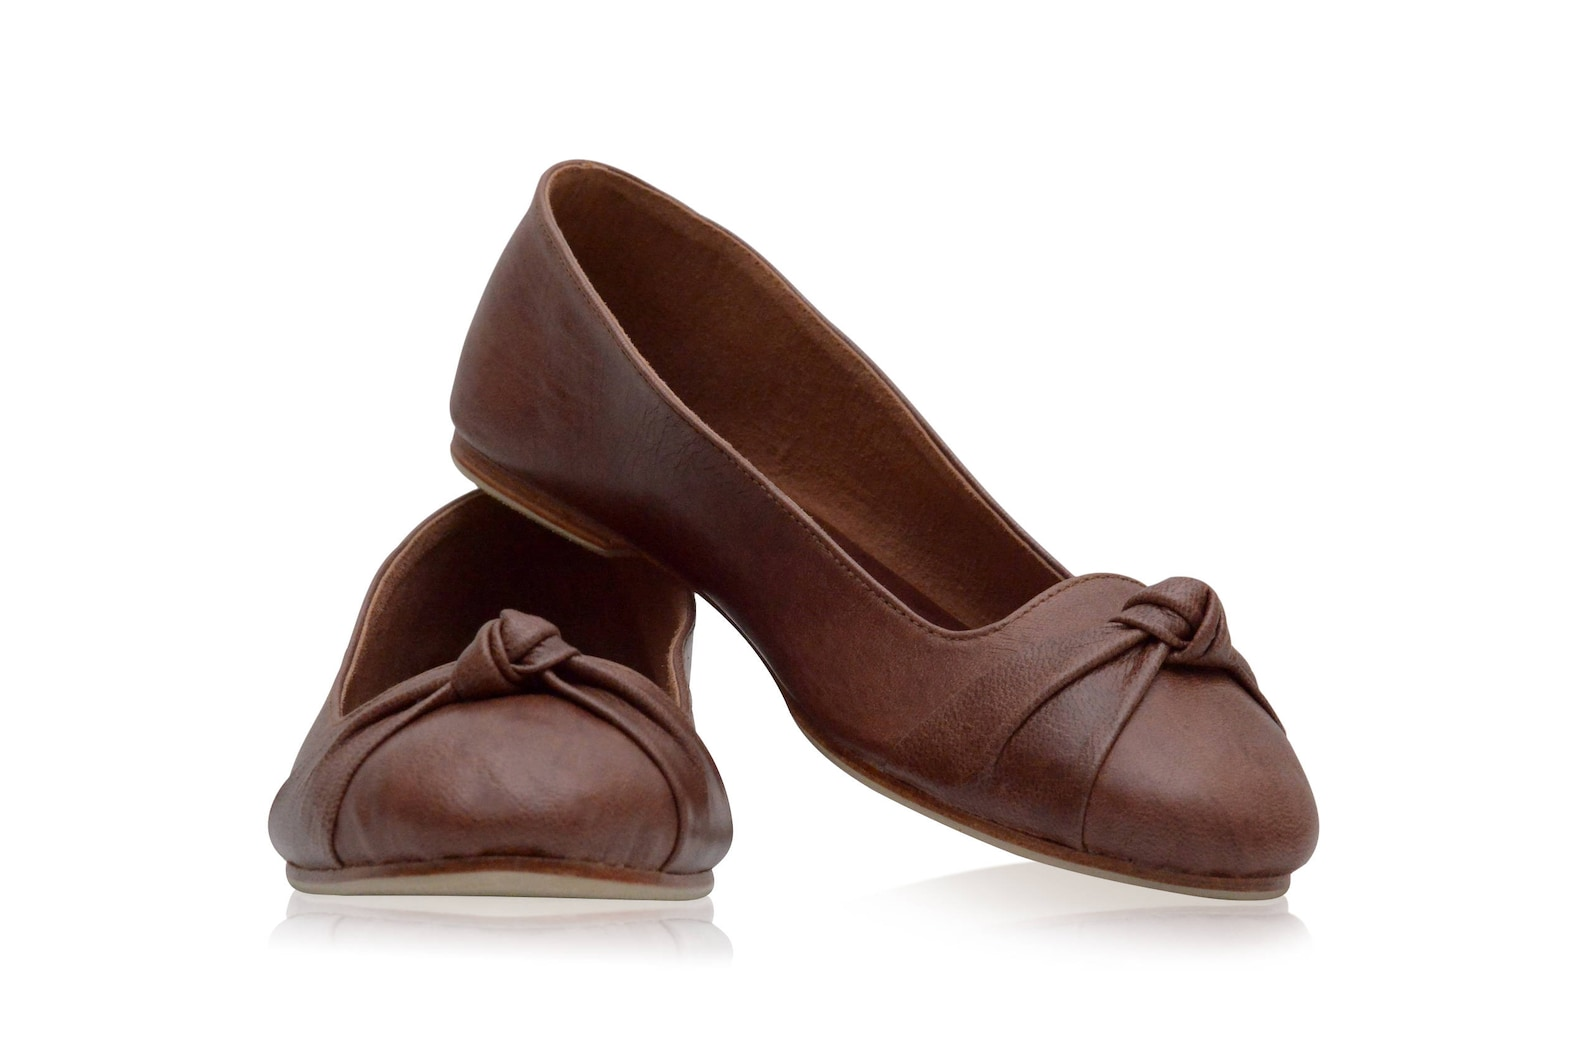 panama. brown shoes / leather ballet flats / women shoes / brown leather flats / women flats. sizes 35-43. available in differen